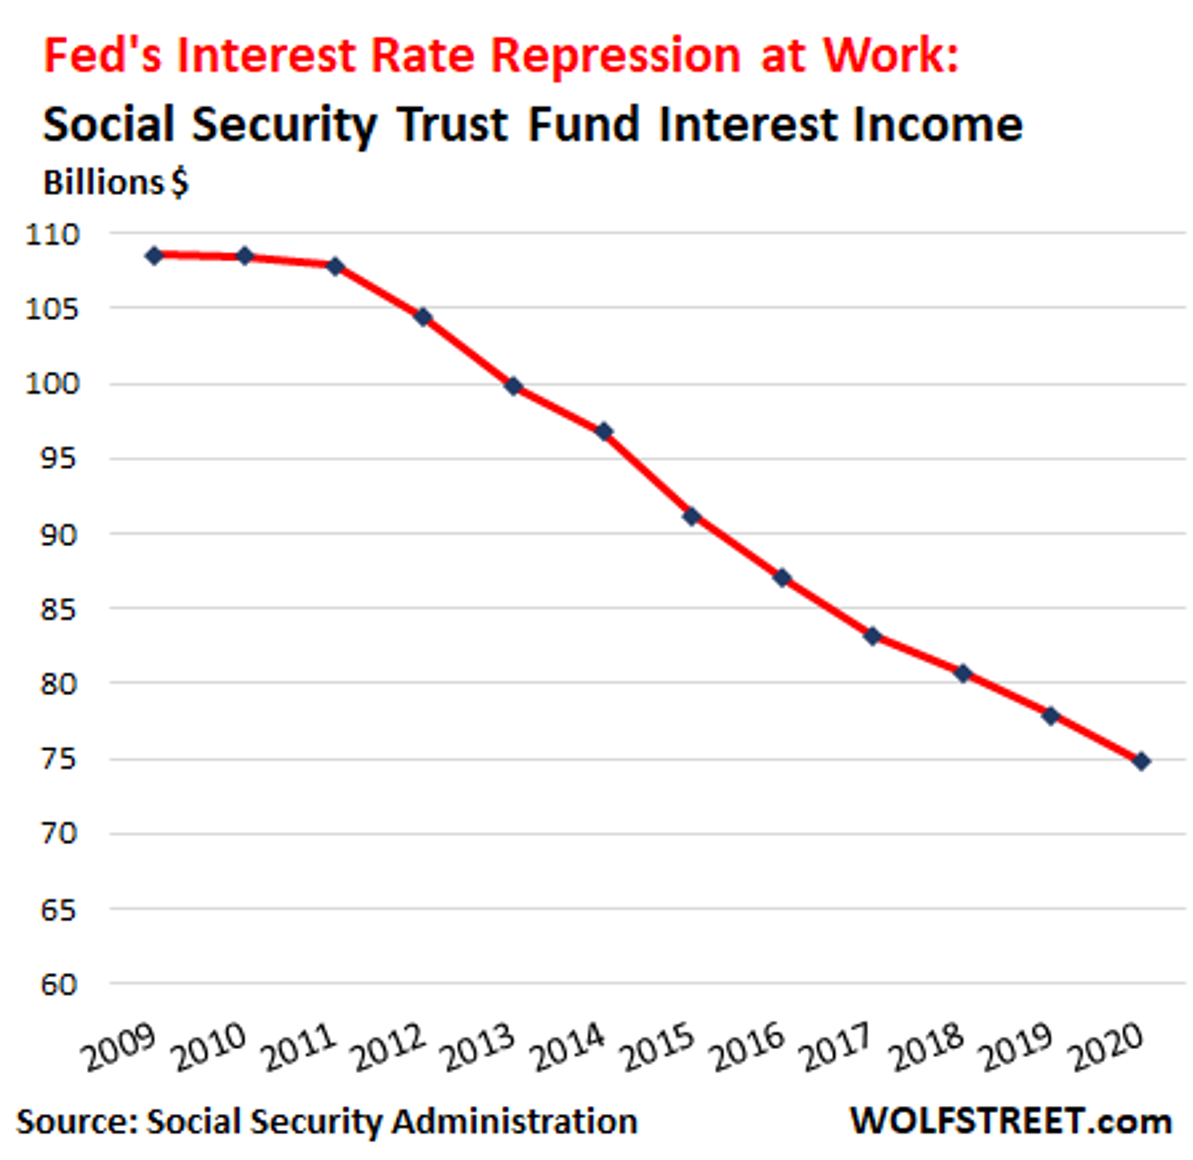 Fed's Interest Rate Repression at Work Chart